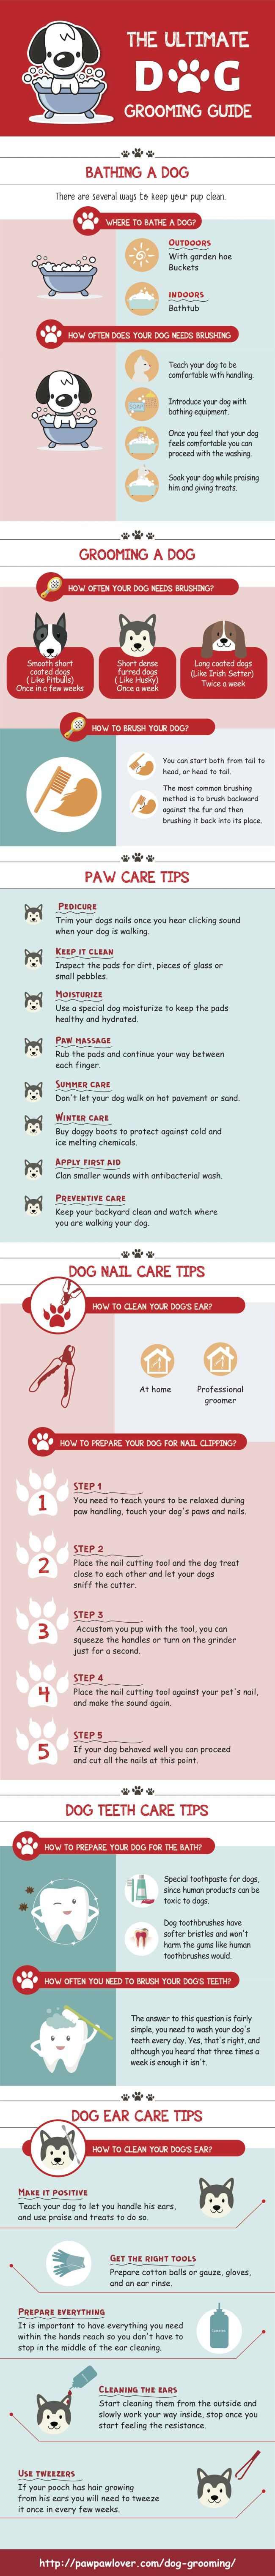 The Ultimate Dog Grooming Guide - Infographic